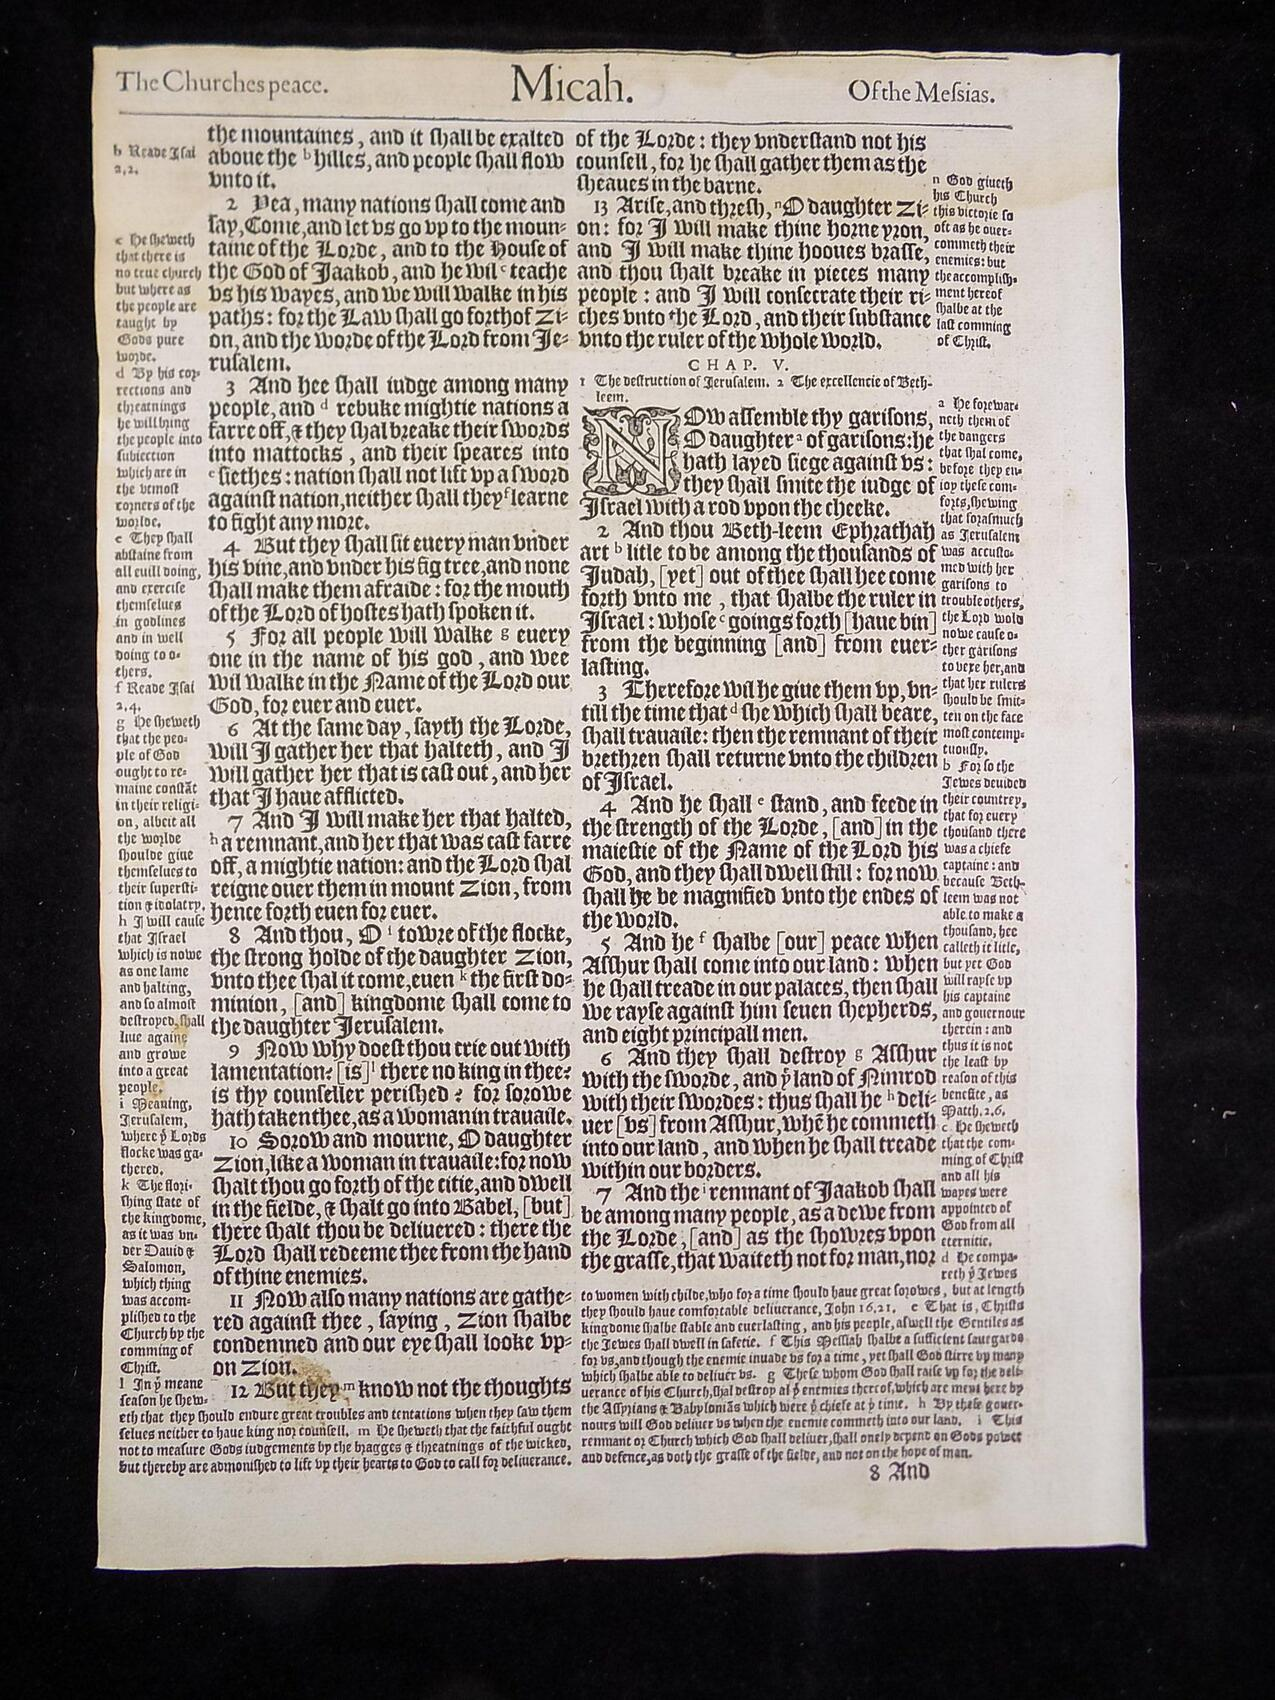 1583 NOBLEST GENEVA BIBLE LEAVES BOOK OF MICAH